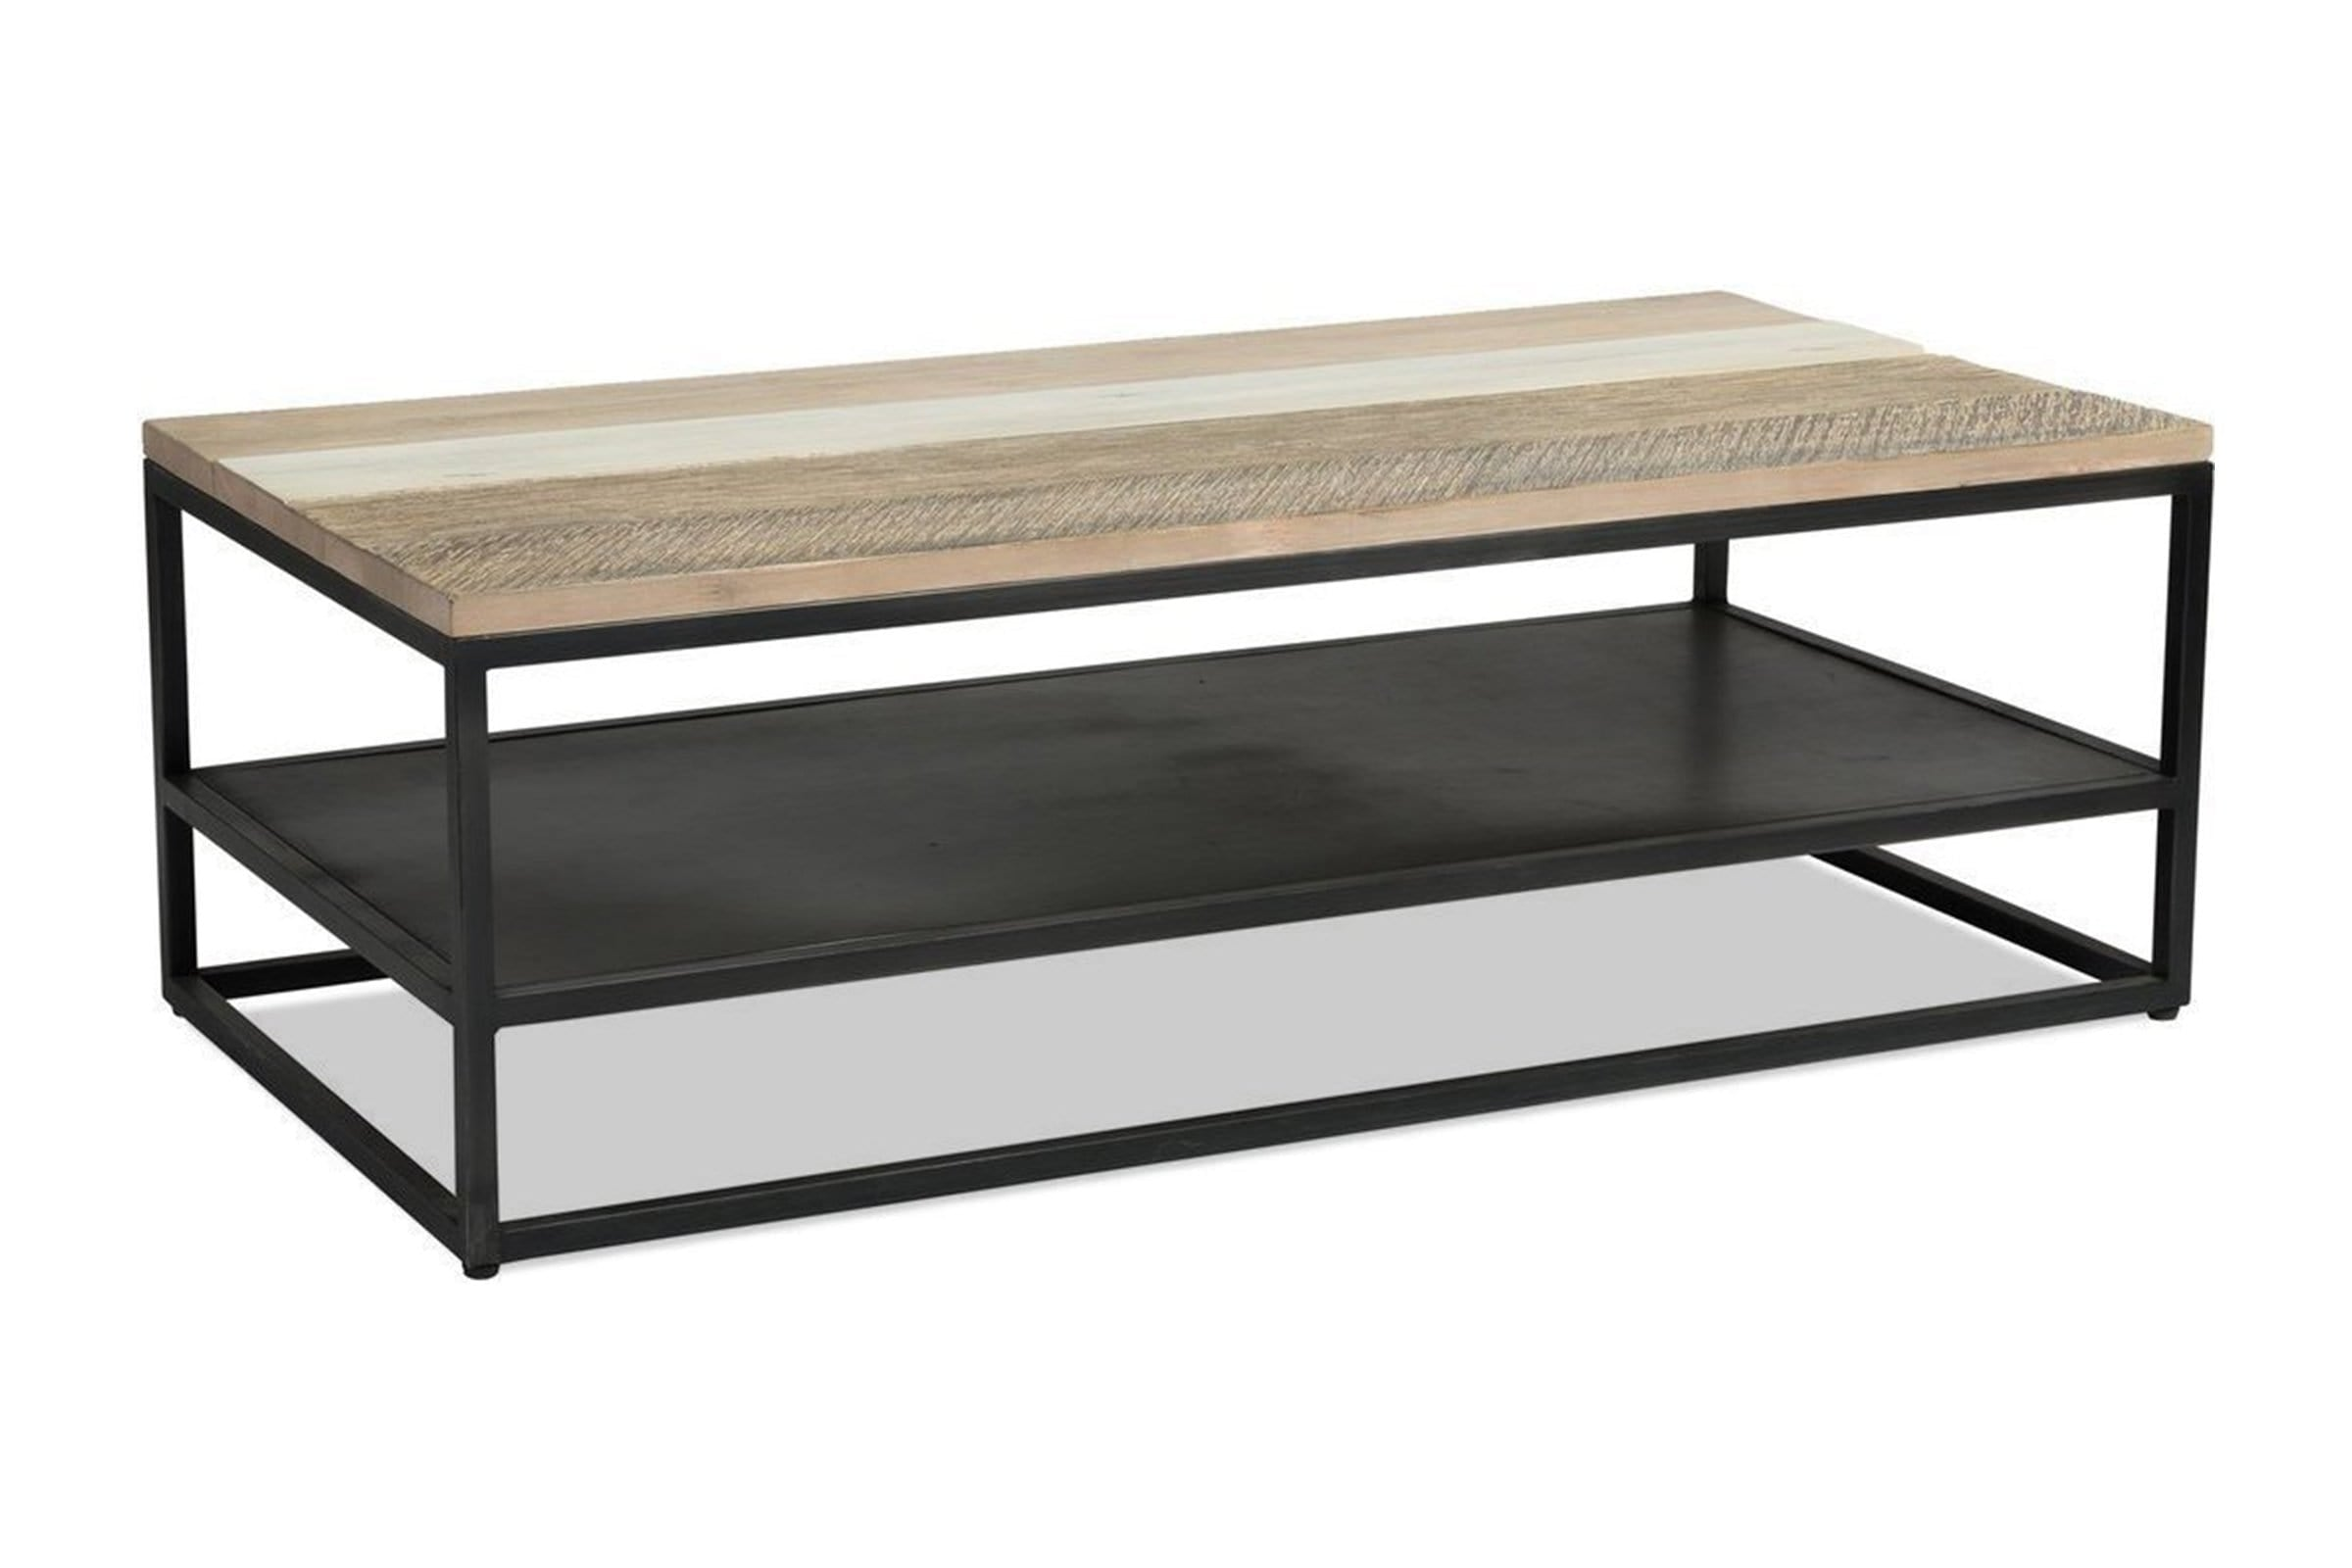 Bandit Ave Coffee Table - Living Room Furniture sold by Apt2B - Modern Coffee Table - Sold by Apt2B